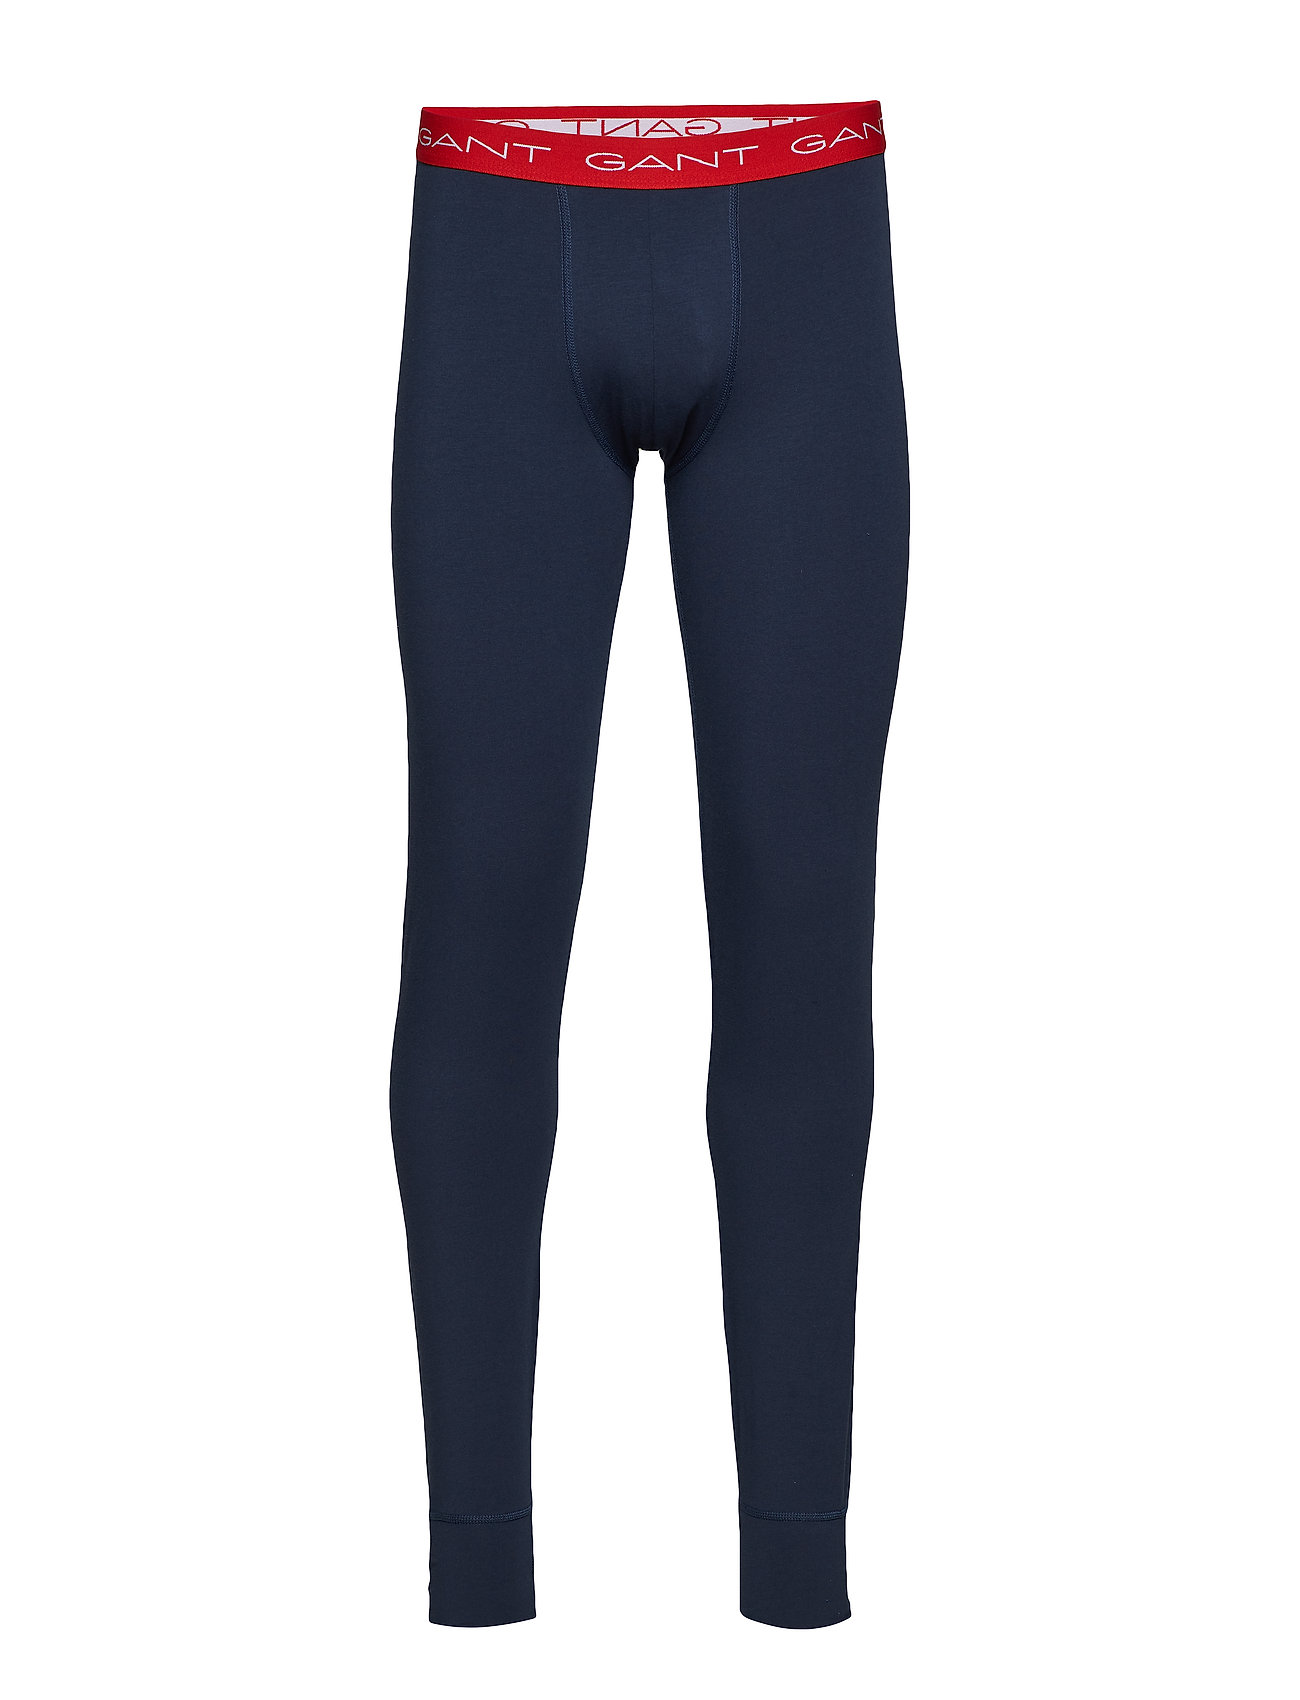 GANT LONG JOHNS SOLID COTTON STRETCH - MARINE